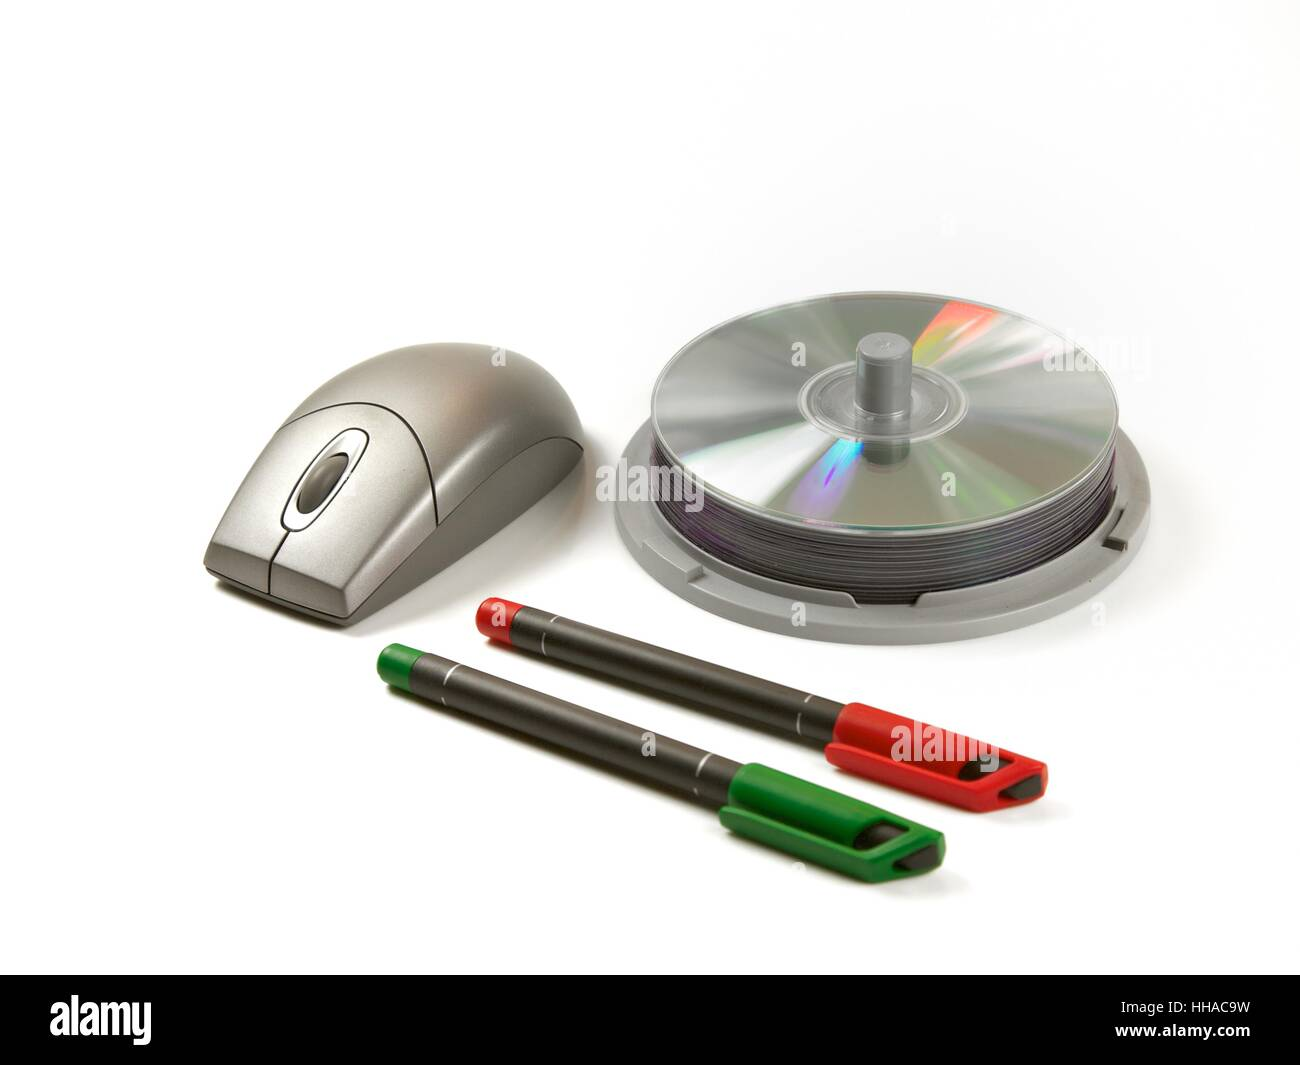 Stationery General Daily Usage CD CD pen and Computer Mouse on the Office Desk - Stock Image